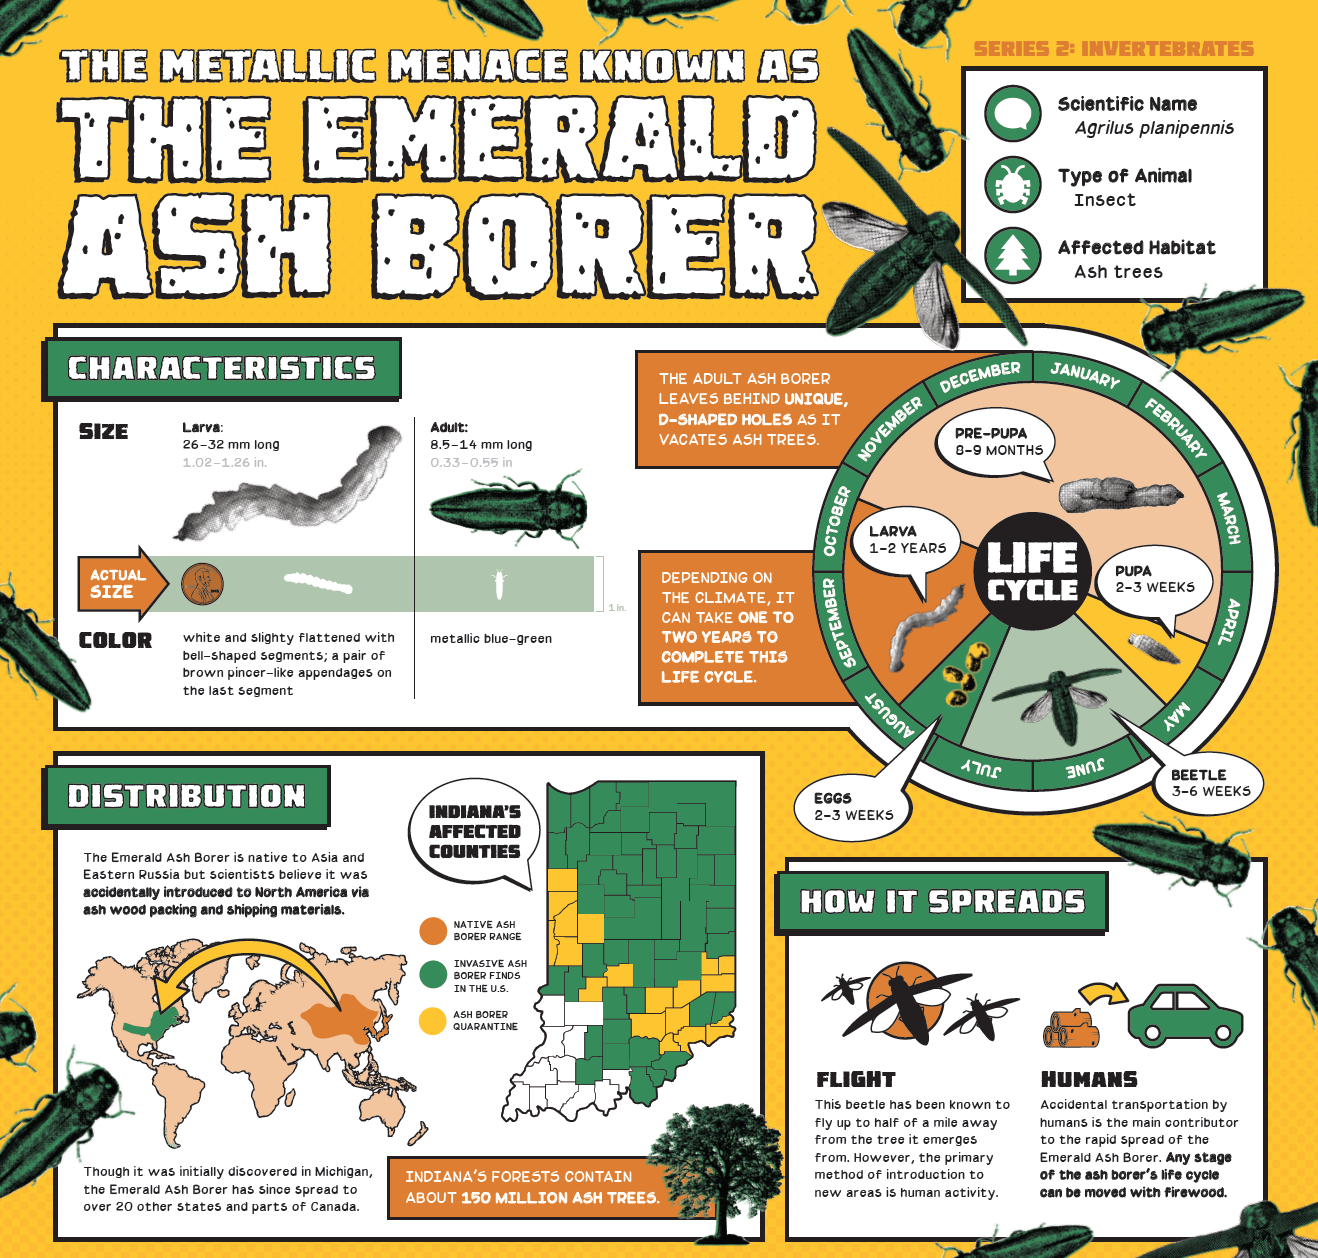 Invasive Species Posters - Emerald Ash Borer detail